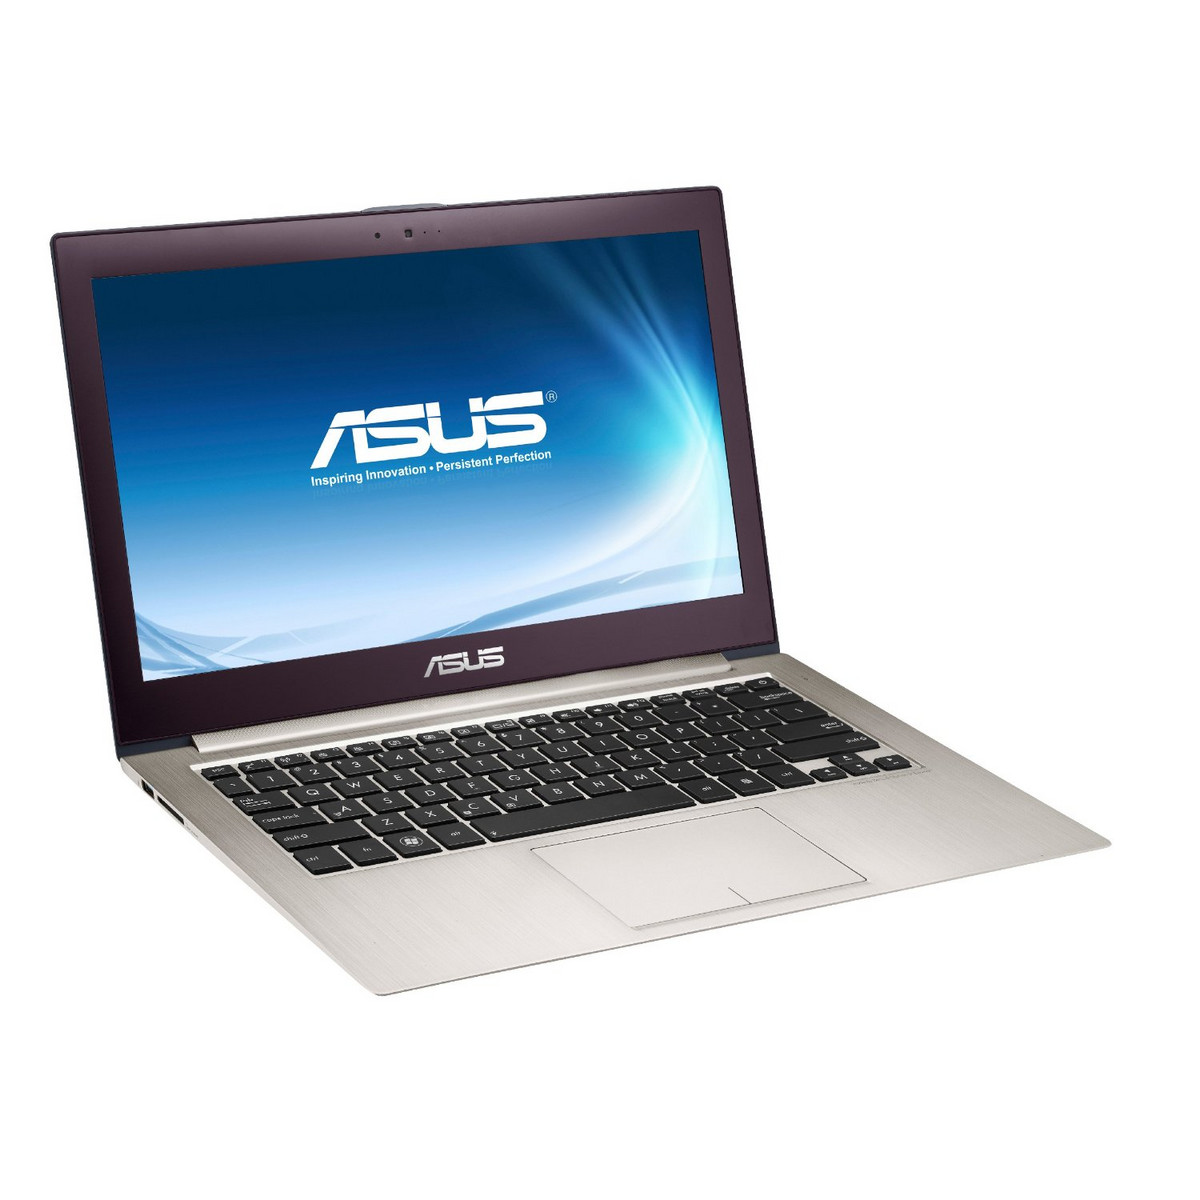 Asus ZENBOOK UX32VD Virtual Touch Drivers for Mac